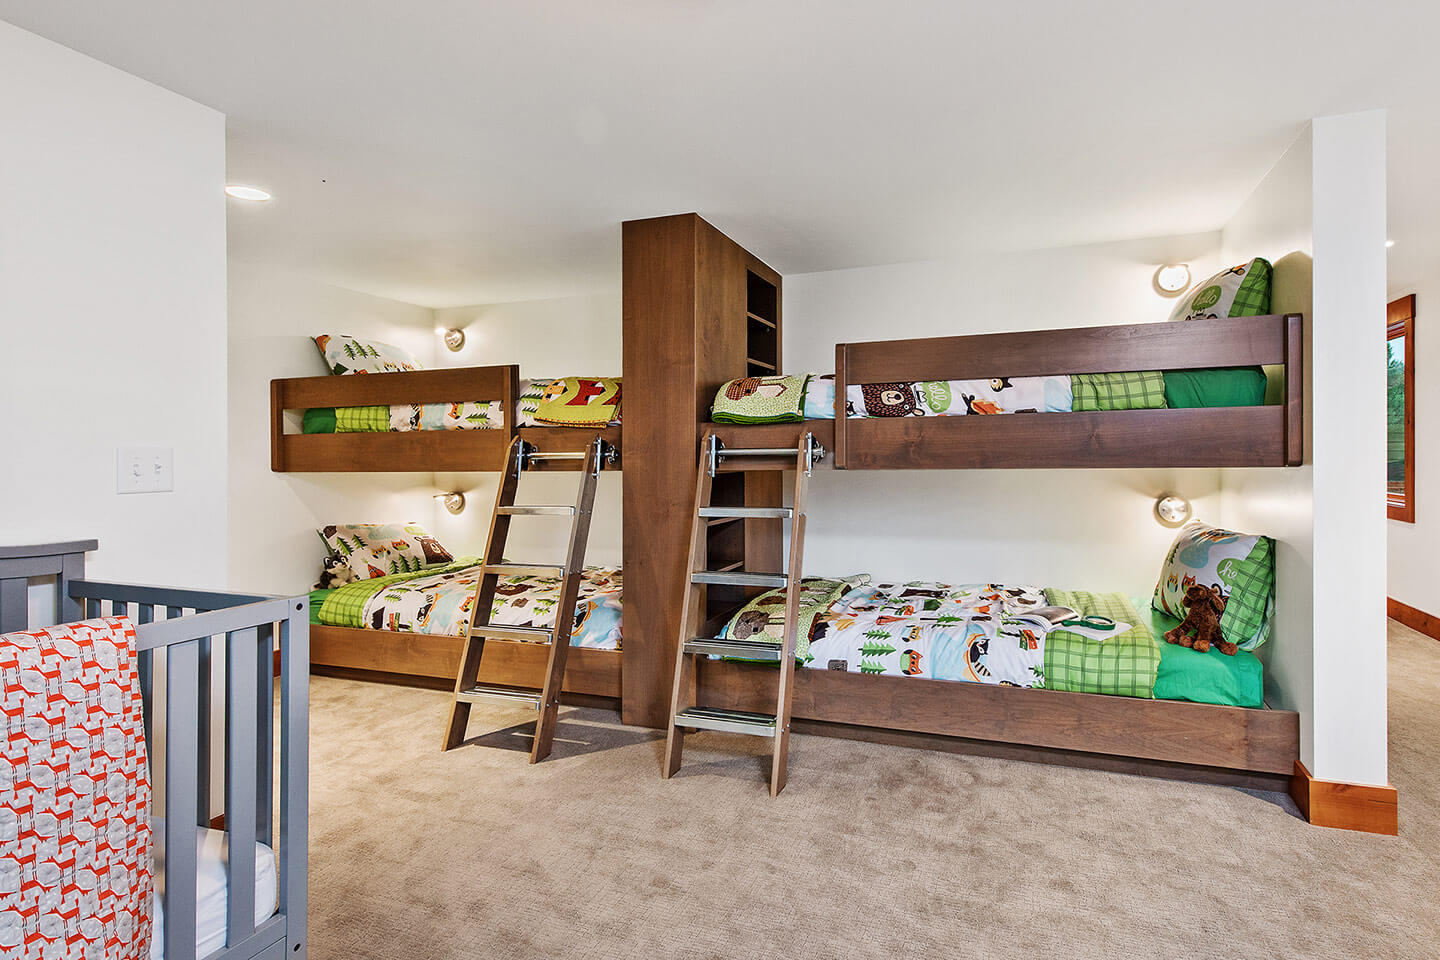 Children's bedroom with custom-designed bunk beds and crib